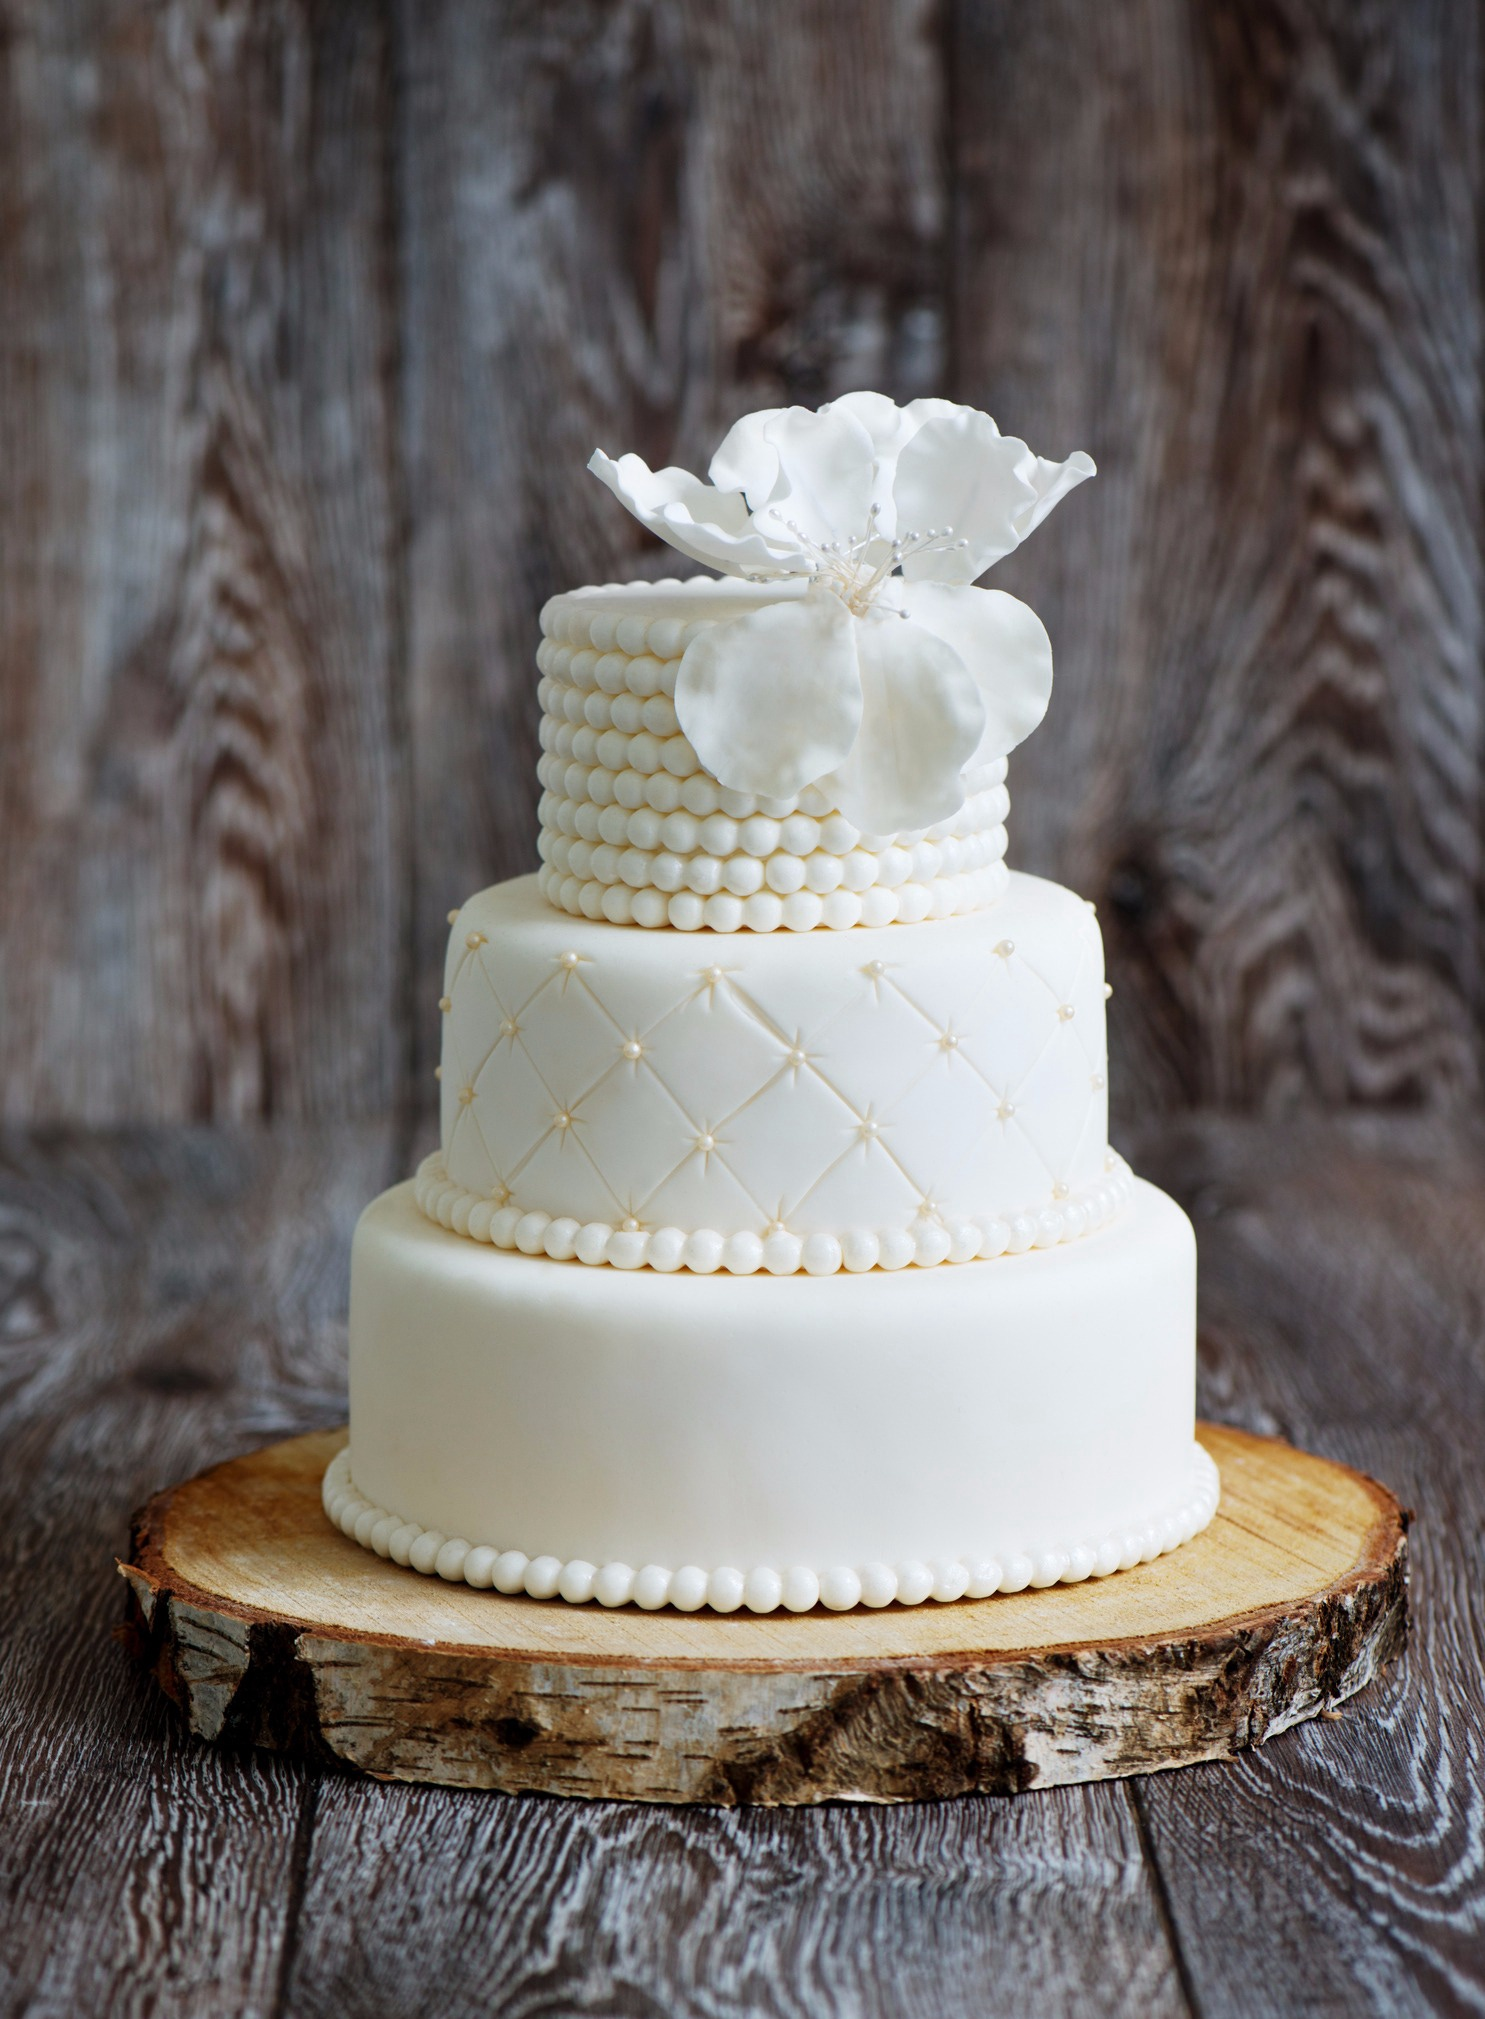 Rate These Wedding Cakes And We\'ll Reveal What Kind Of Wedding You ...